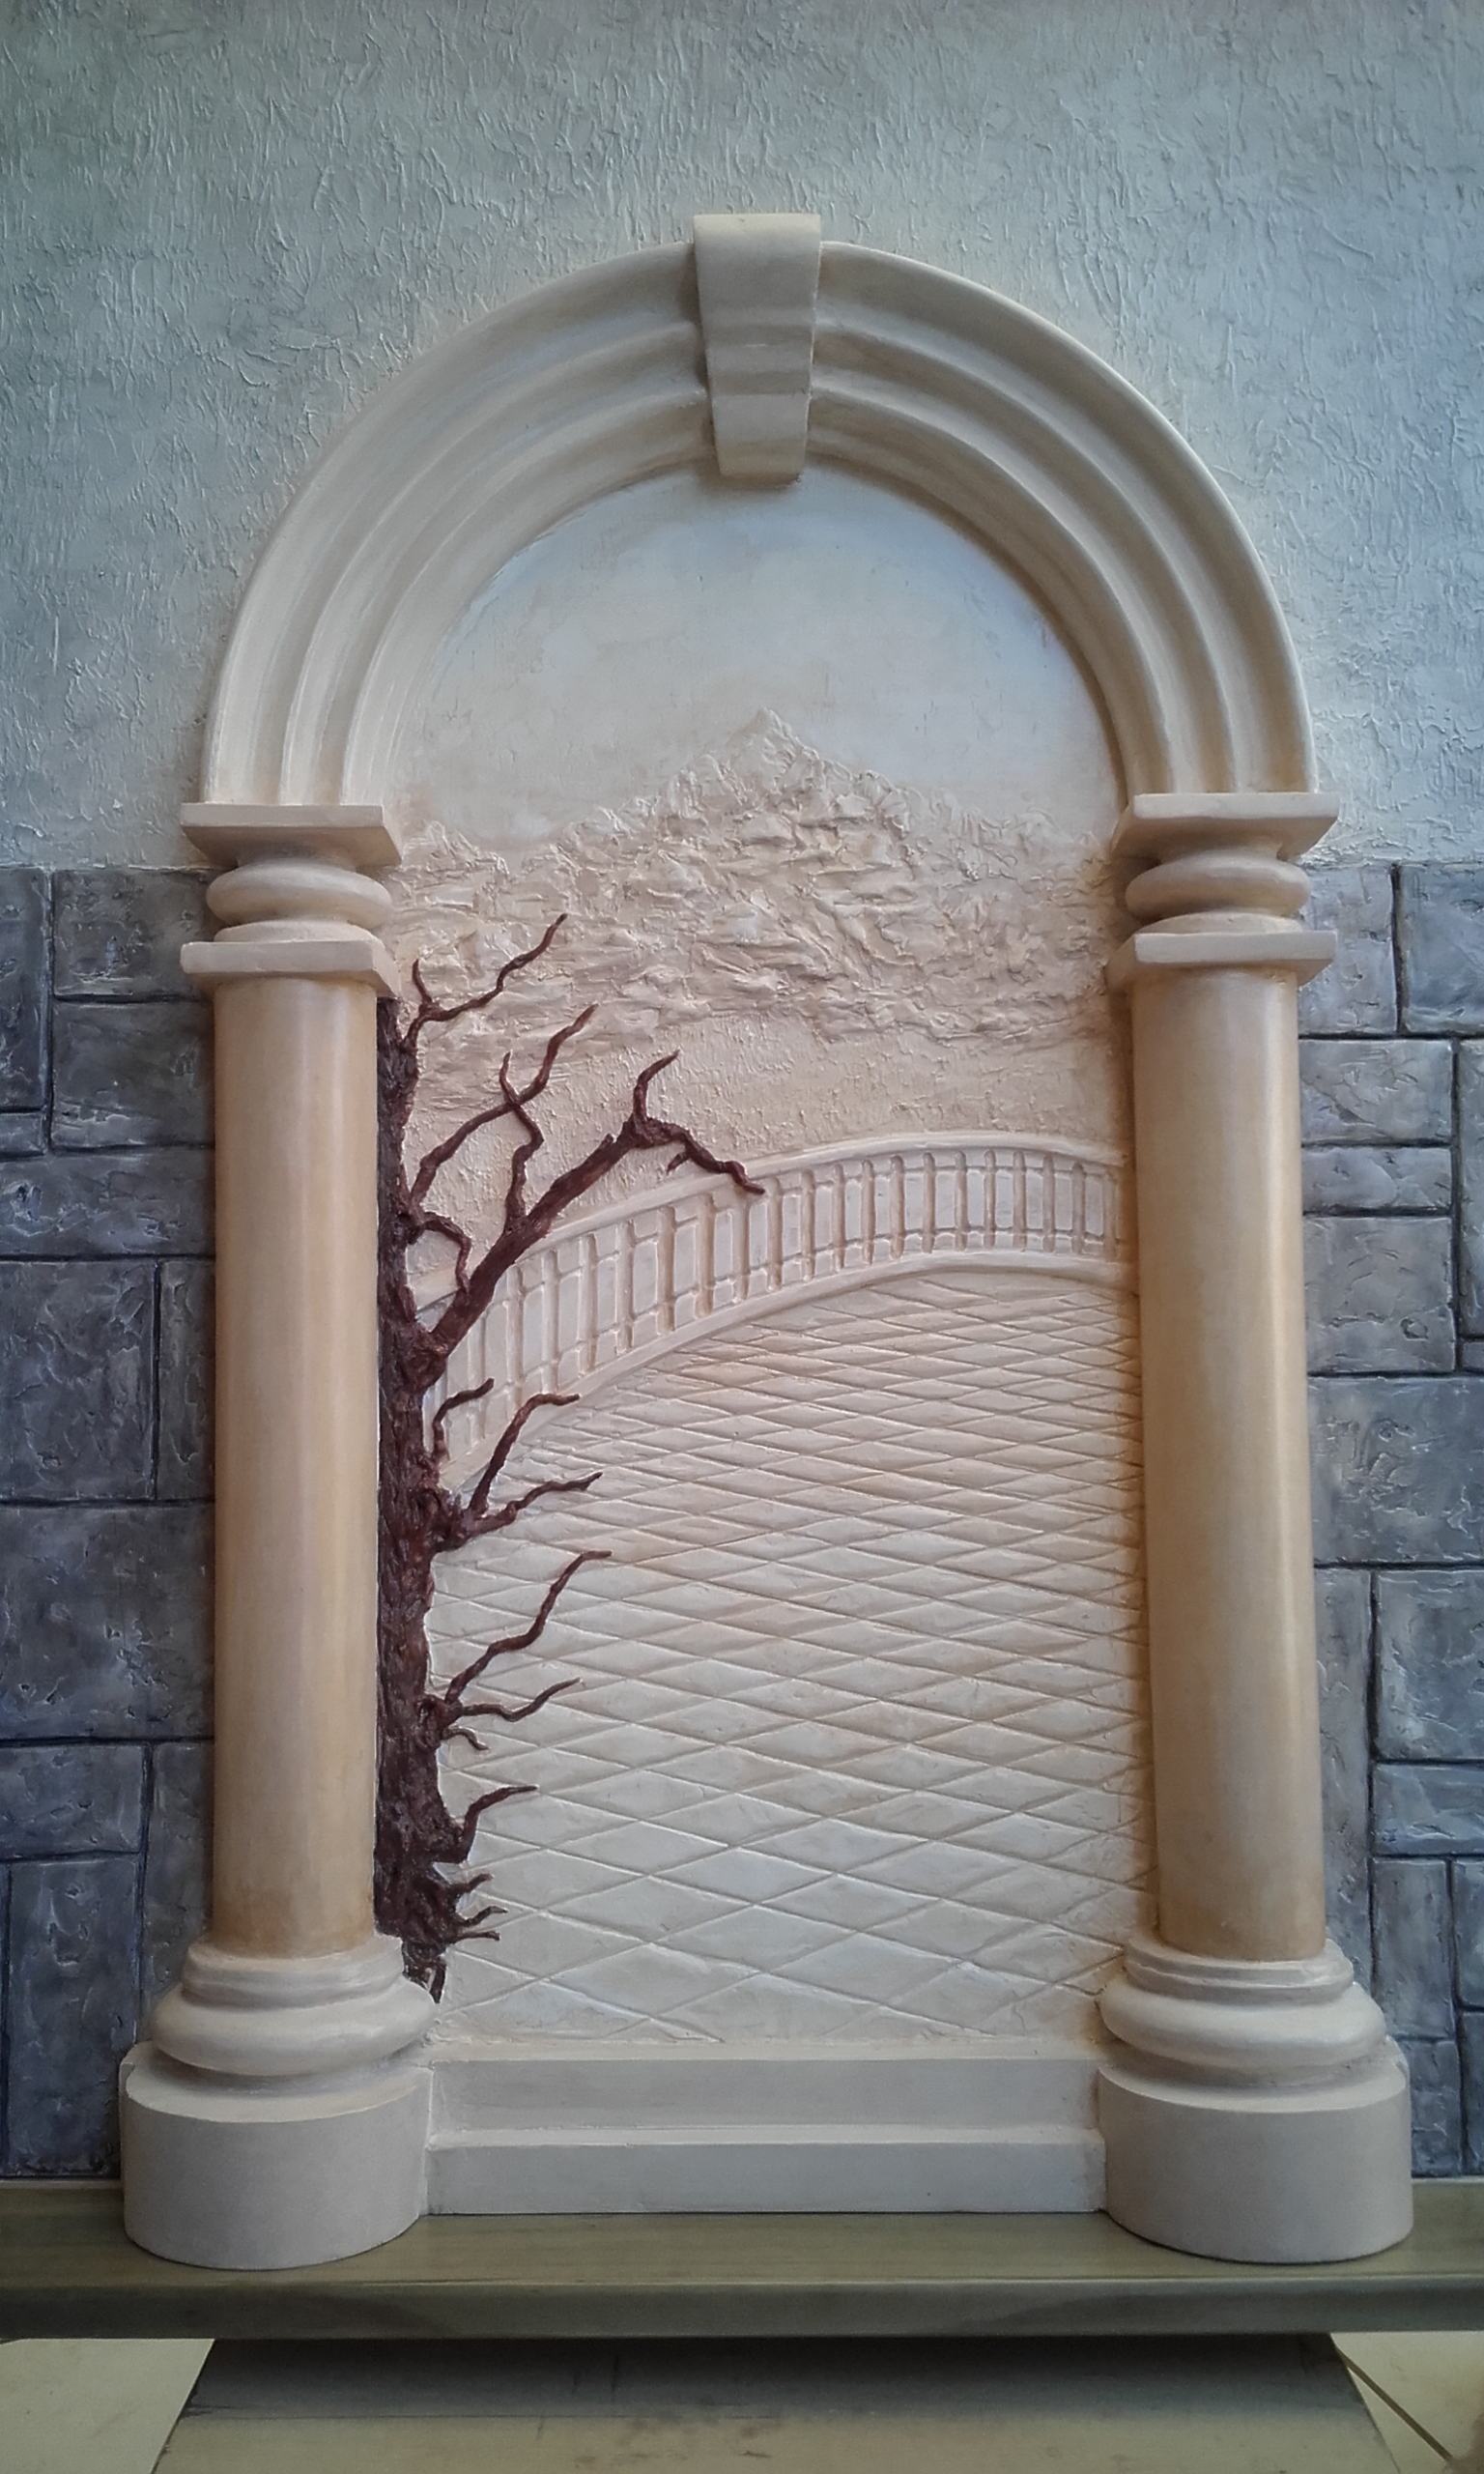 3D Sculpted Art on Walls